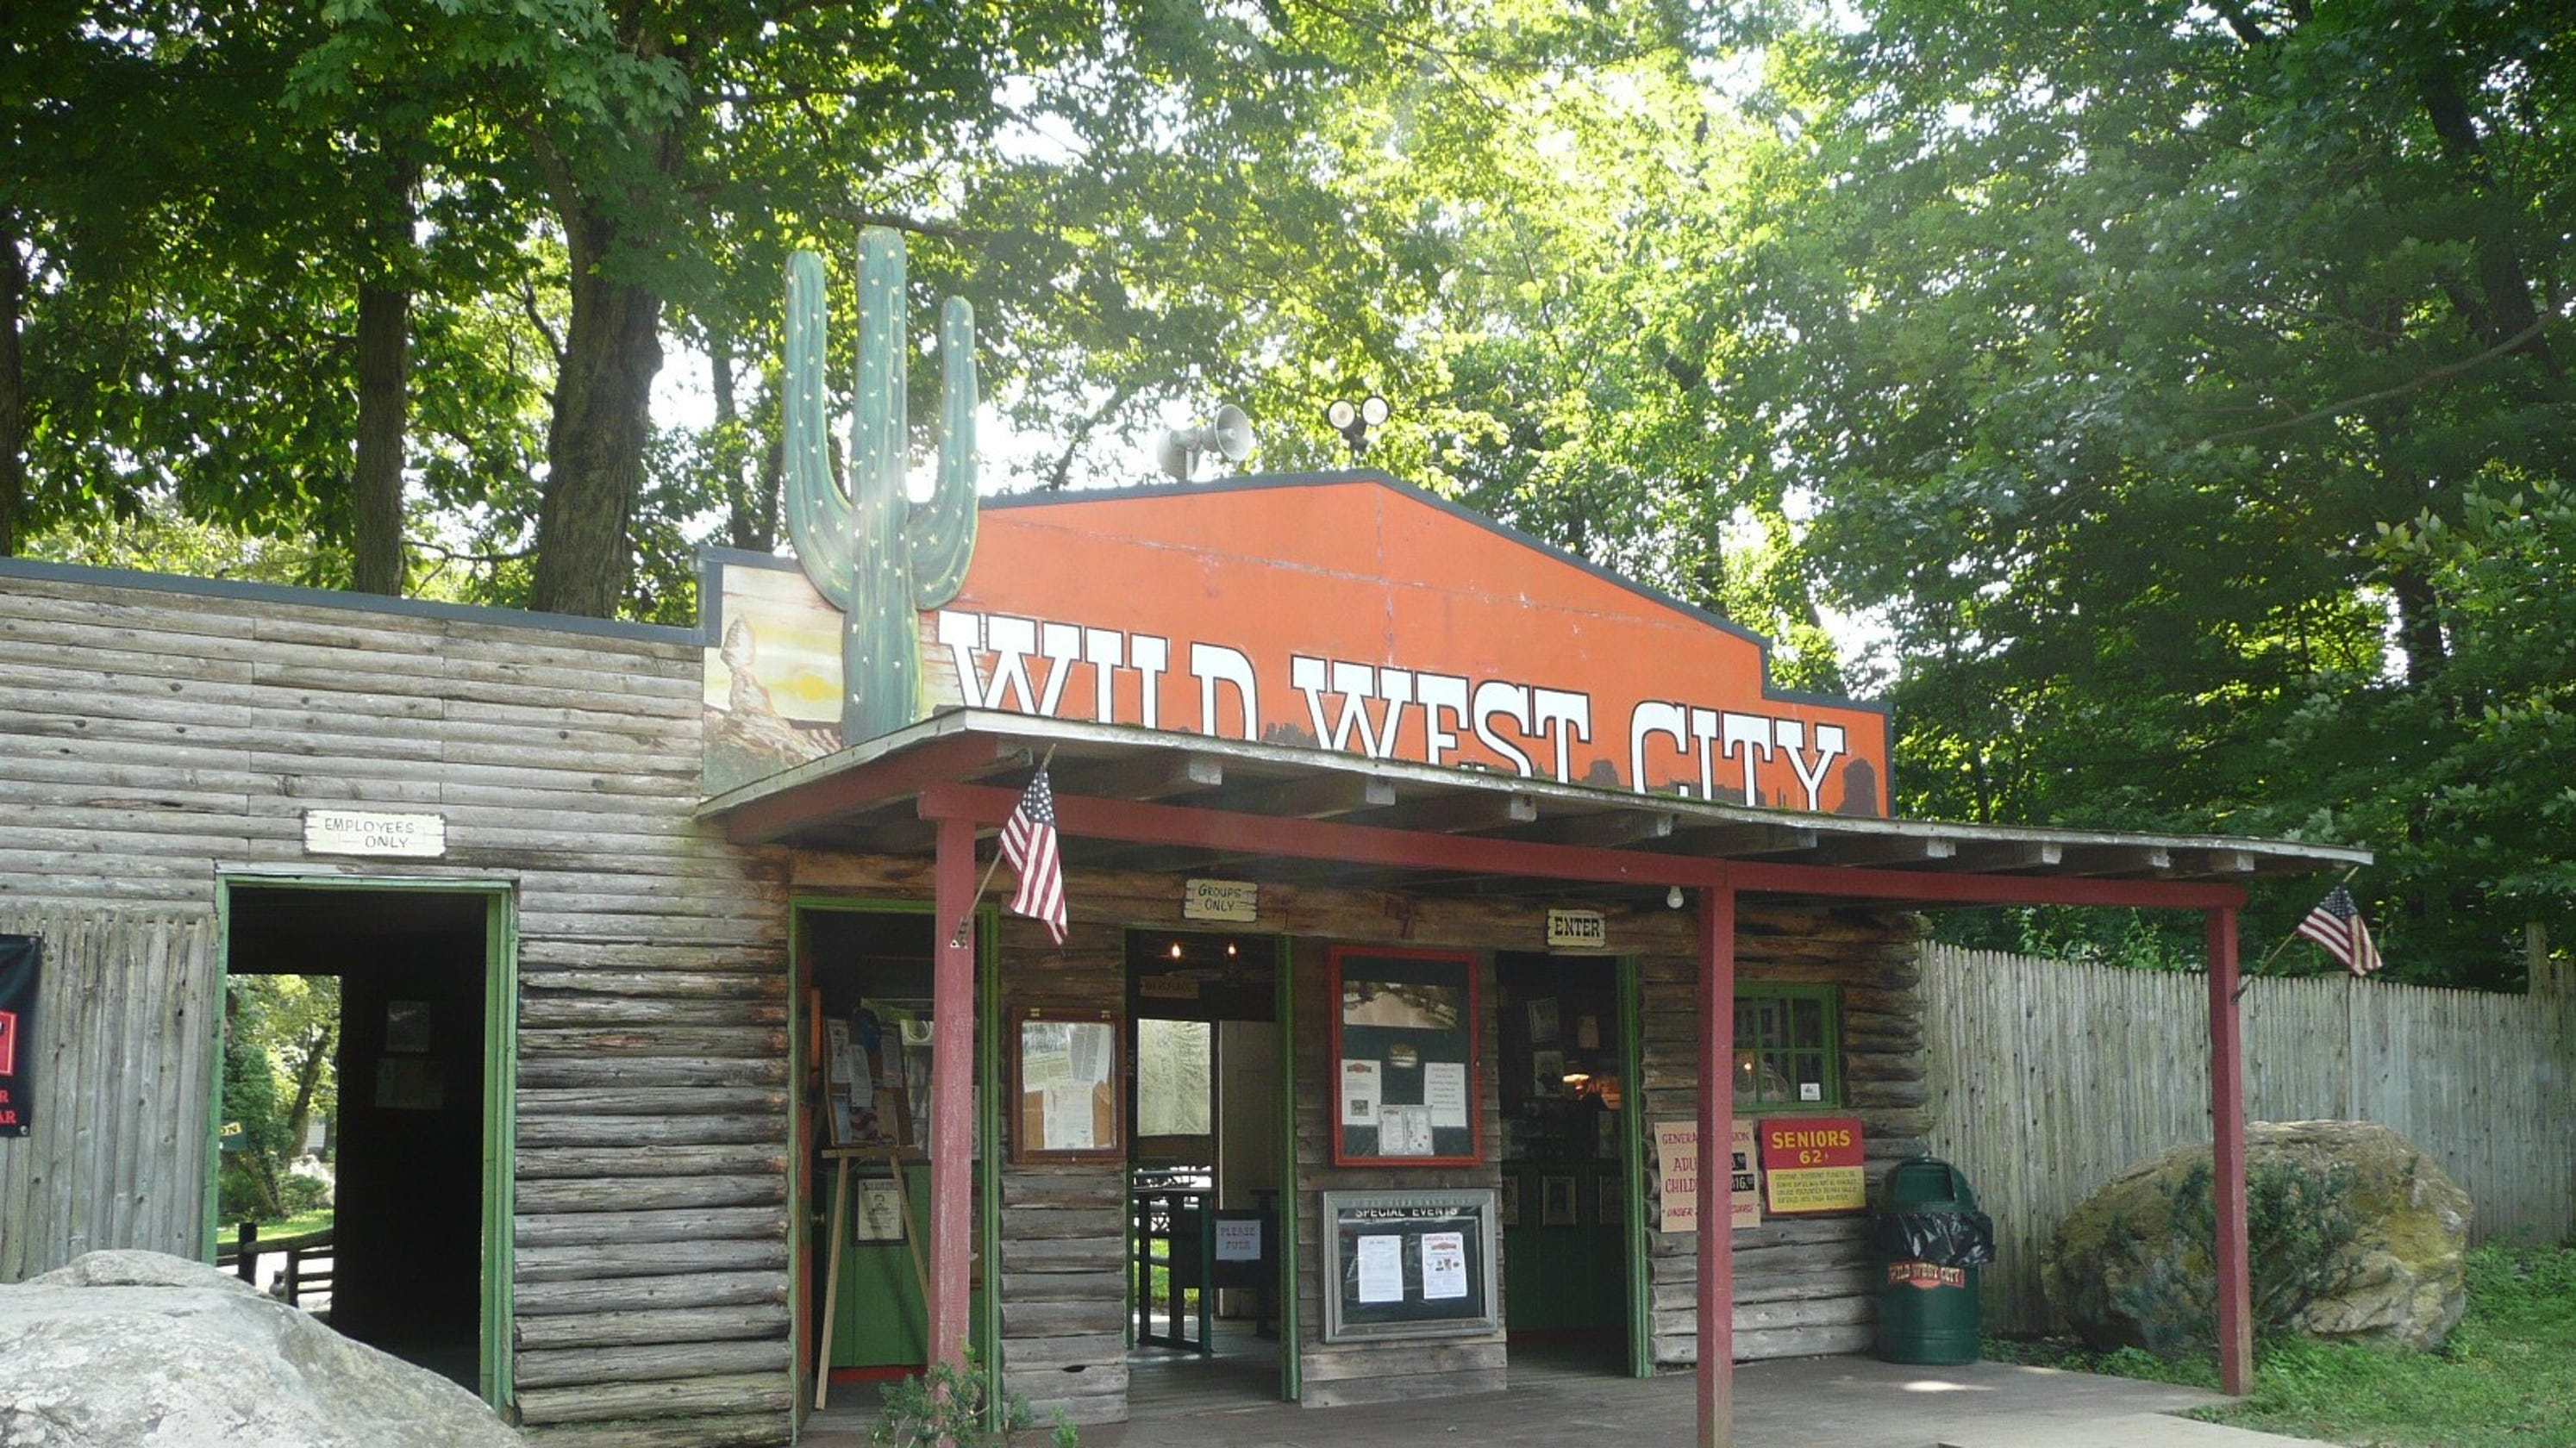 92c465ff5e1 Wild West City: Western-themed park brings frontier America to NJ